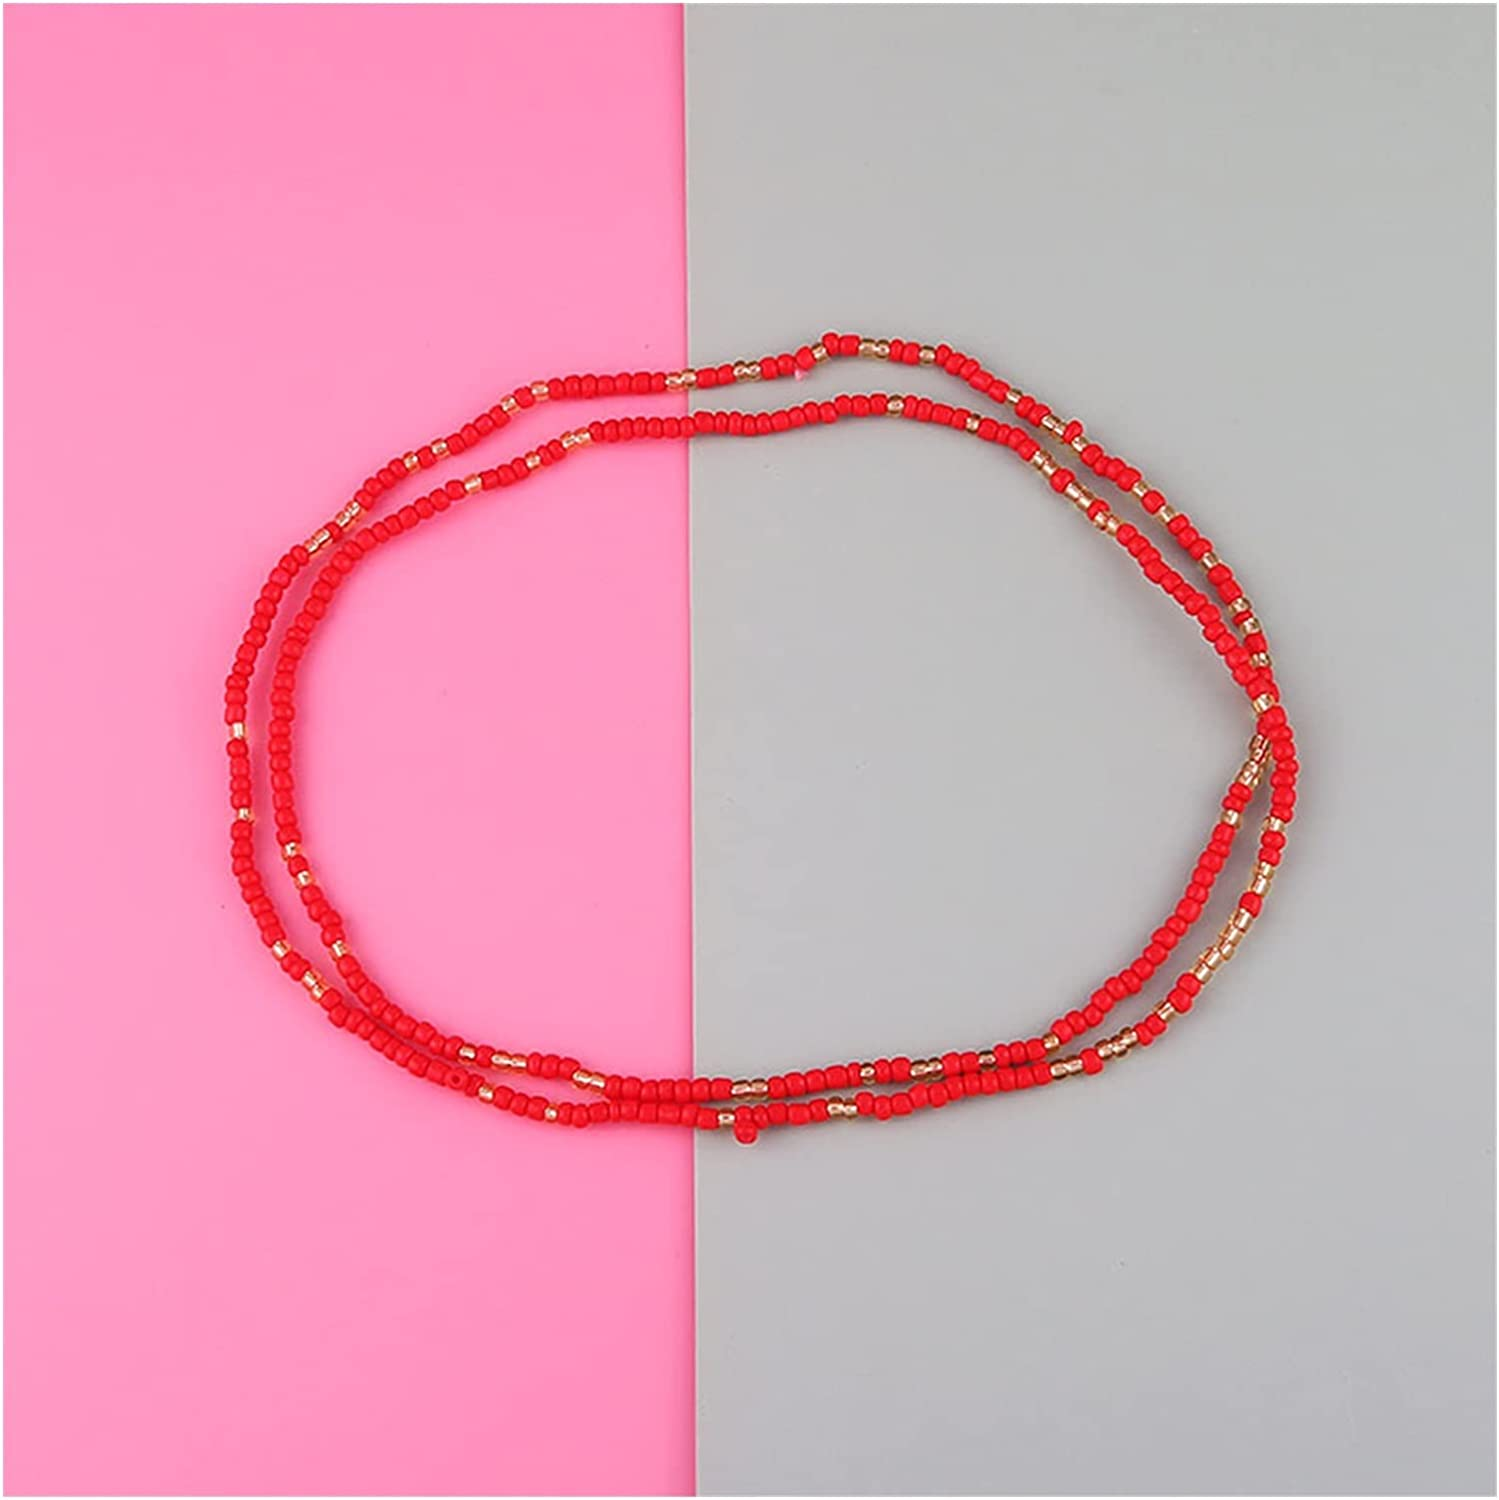 ZHU-CL Bikini Body Chain Color Rice Super Special SALE held Women Max 43% OFF H for Waist Bead